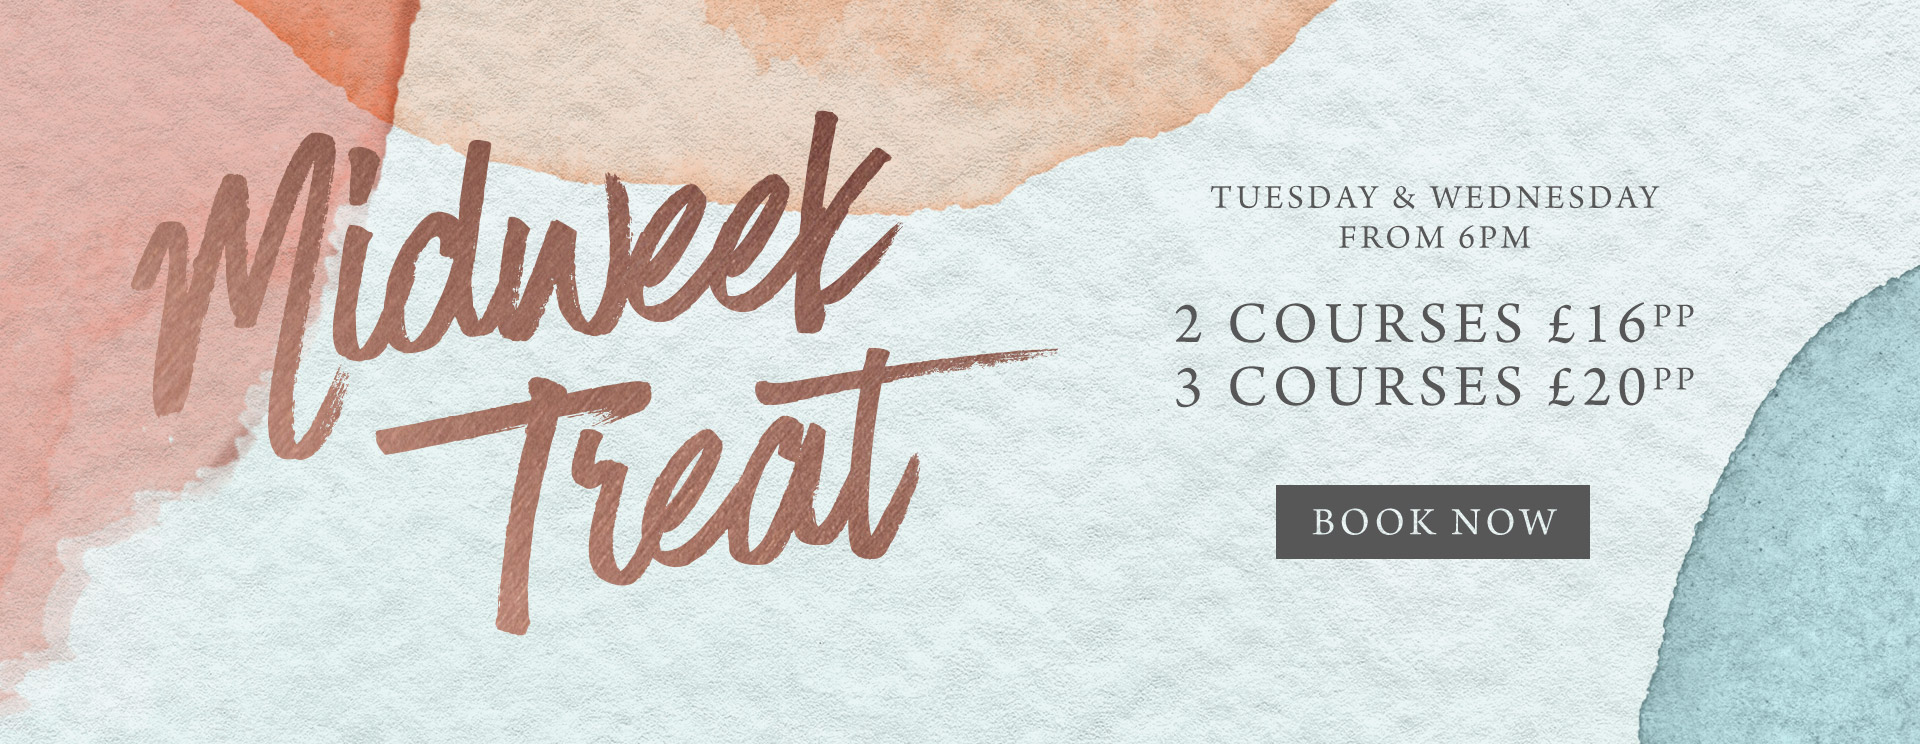 Midweek treat at The Trout Inn - Book now